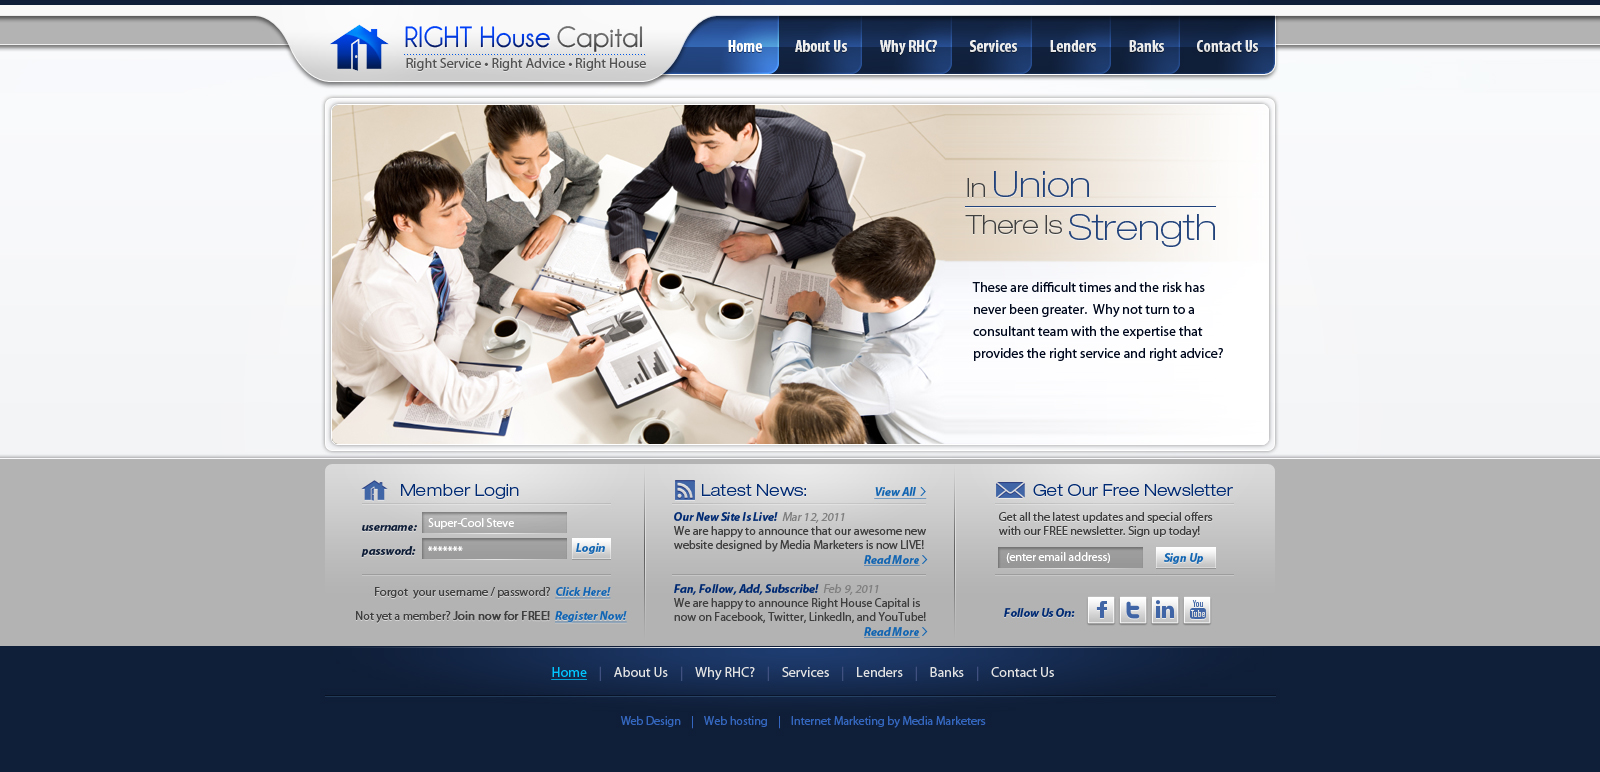 Right House Capital web design by Stephen-Coelho